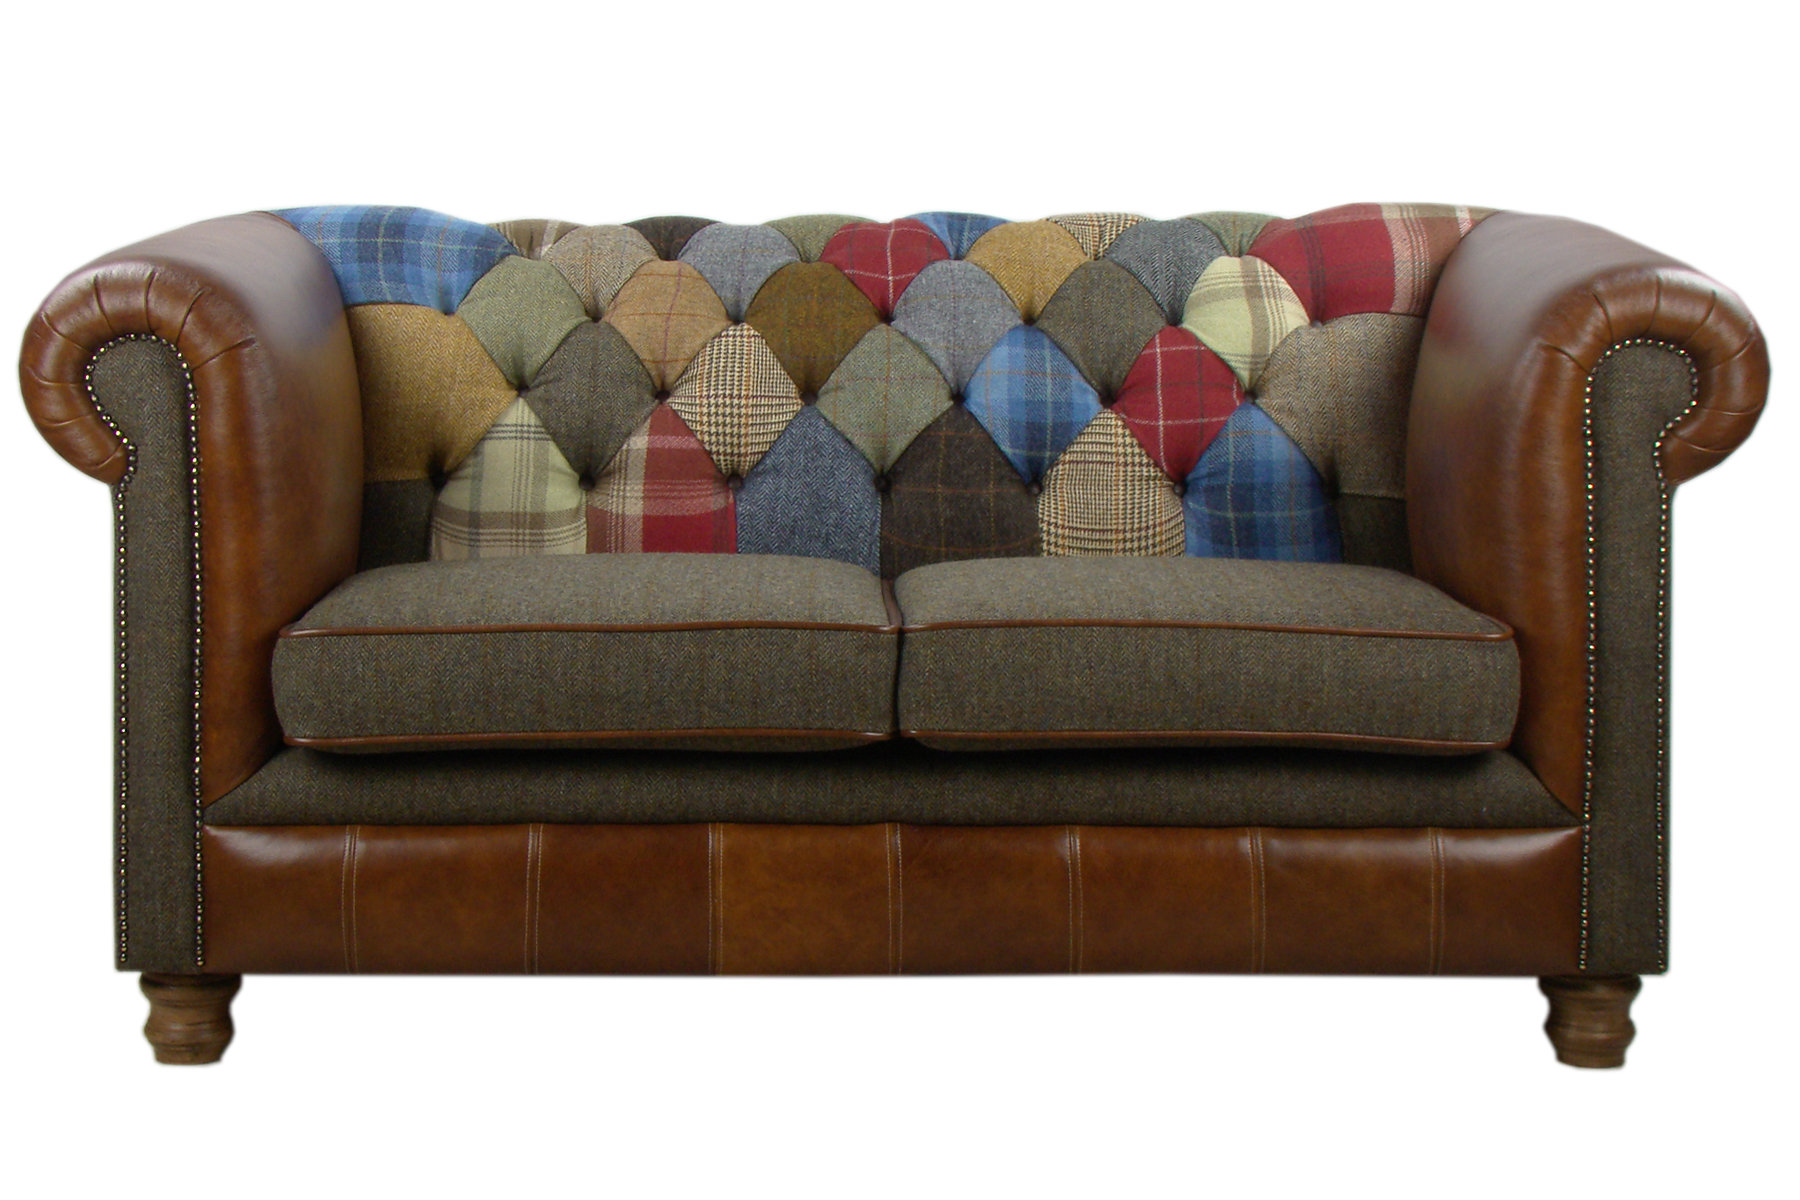 Canapé Chesterfield Patchwork Canapé Chesterfield Patchwork